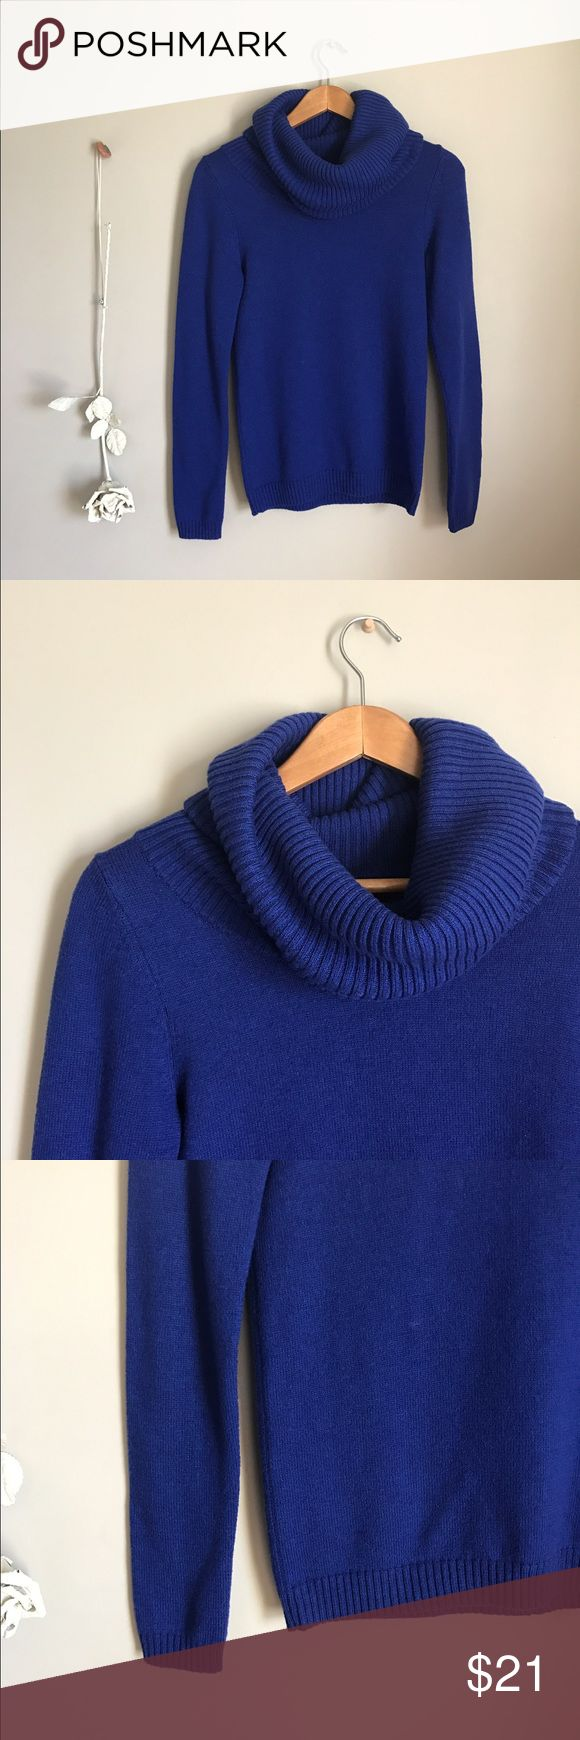 GAP cowl neck sweater Electric-blue cowl neck sweater from GAP. Perfect condition and super cute! Made of wool, nylon, and acrylic. Size small GAP Sweaters Cowl & Turtlenecks